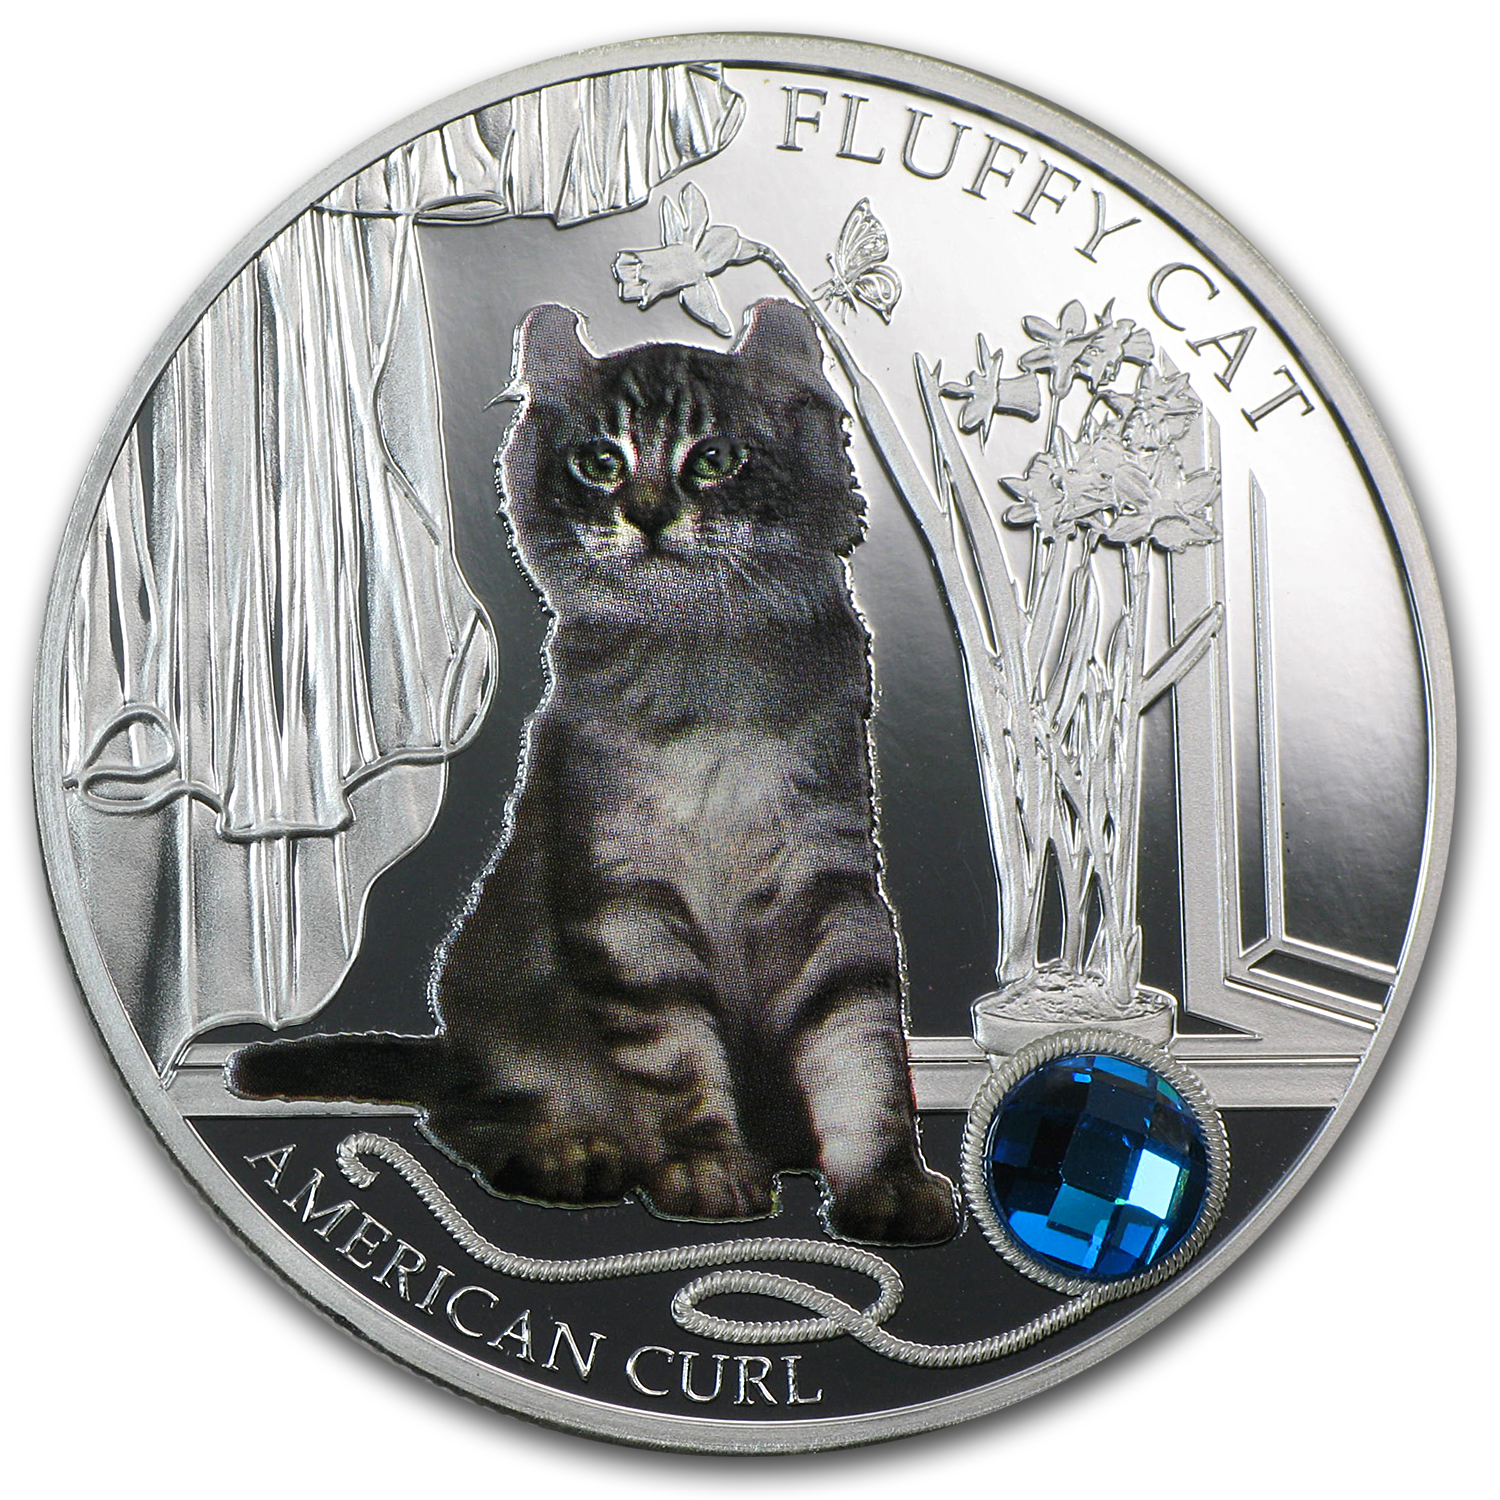 2013 Fiji Silver Dogs & Cats Series Fluffy Cat American Curl